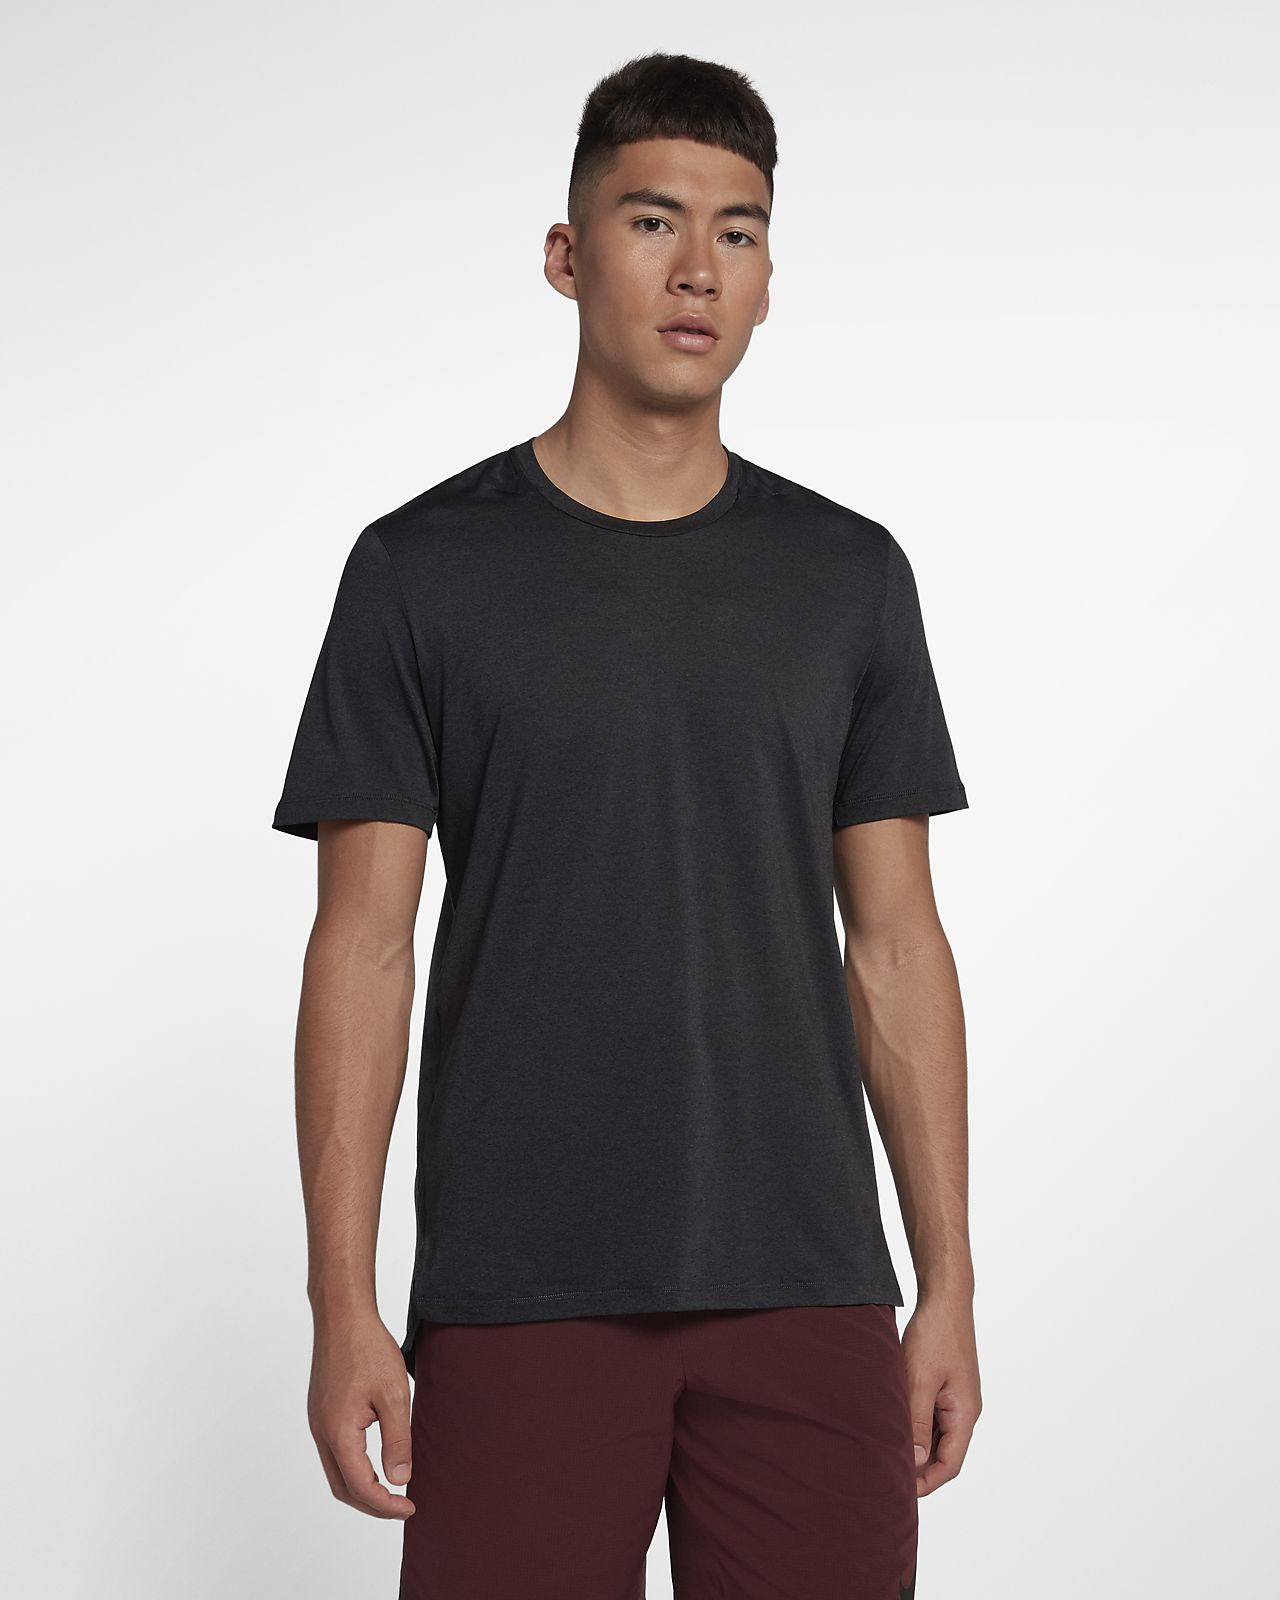 9bec2b06 Nike Dri-FIT Premium Men's Short-Sleeve Training Top. Nike.com EG